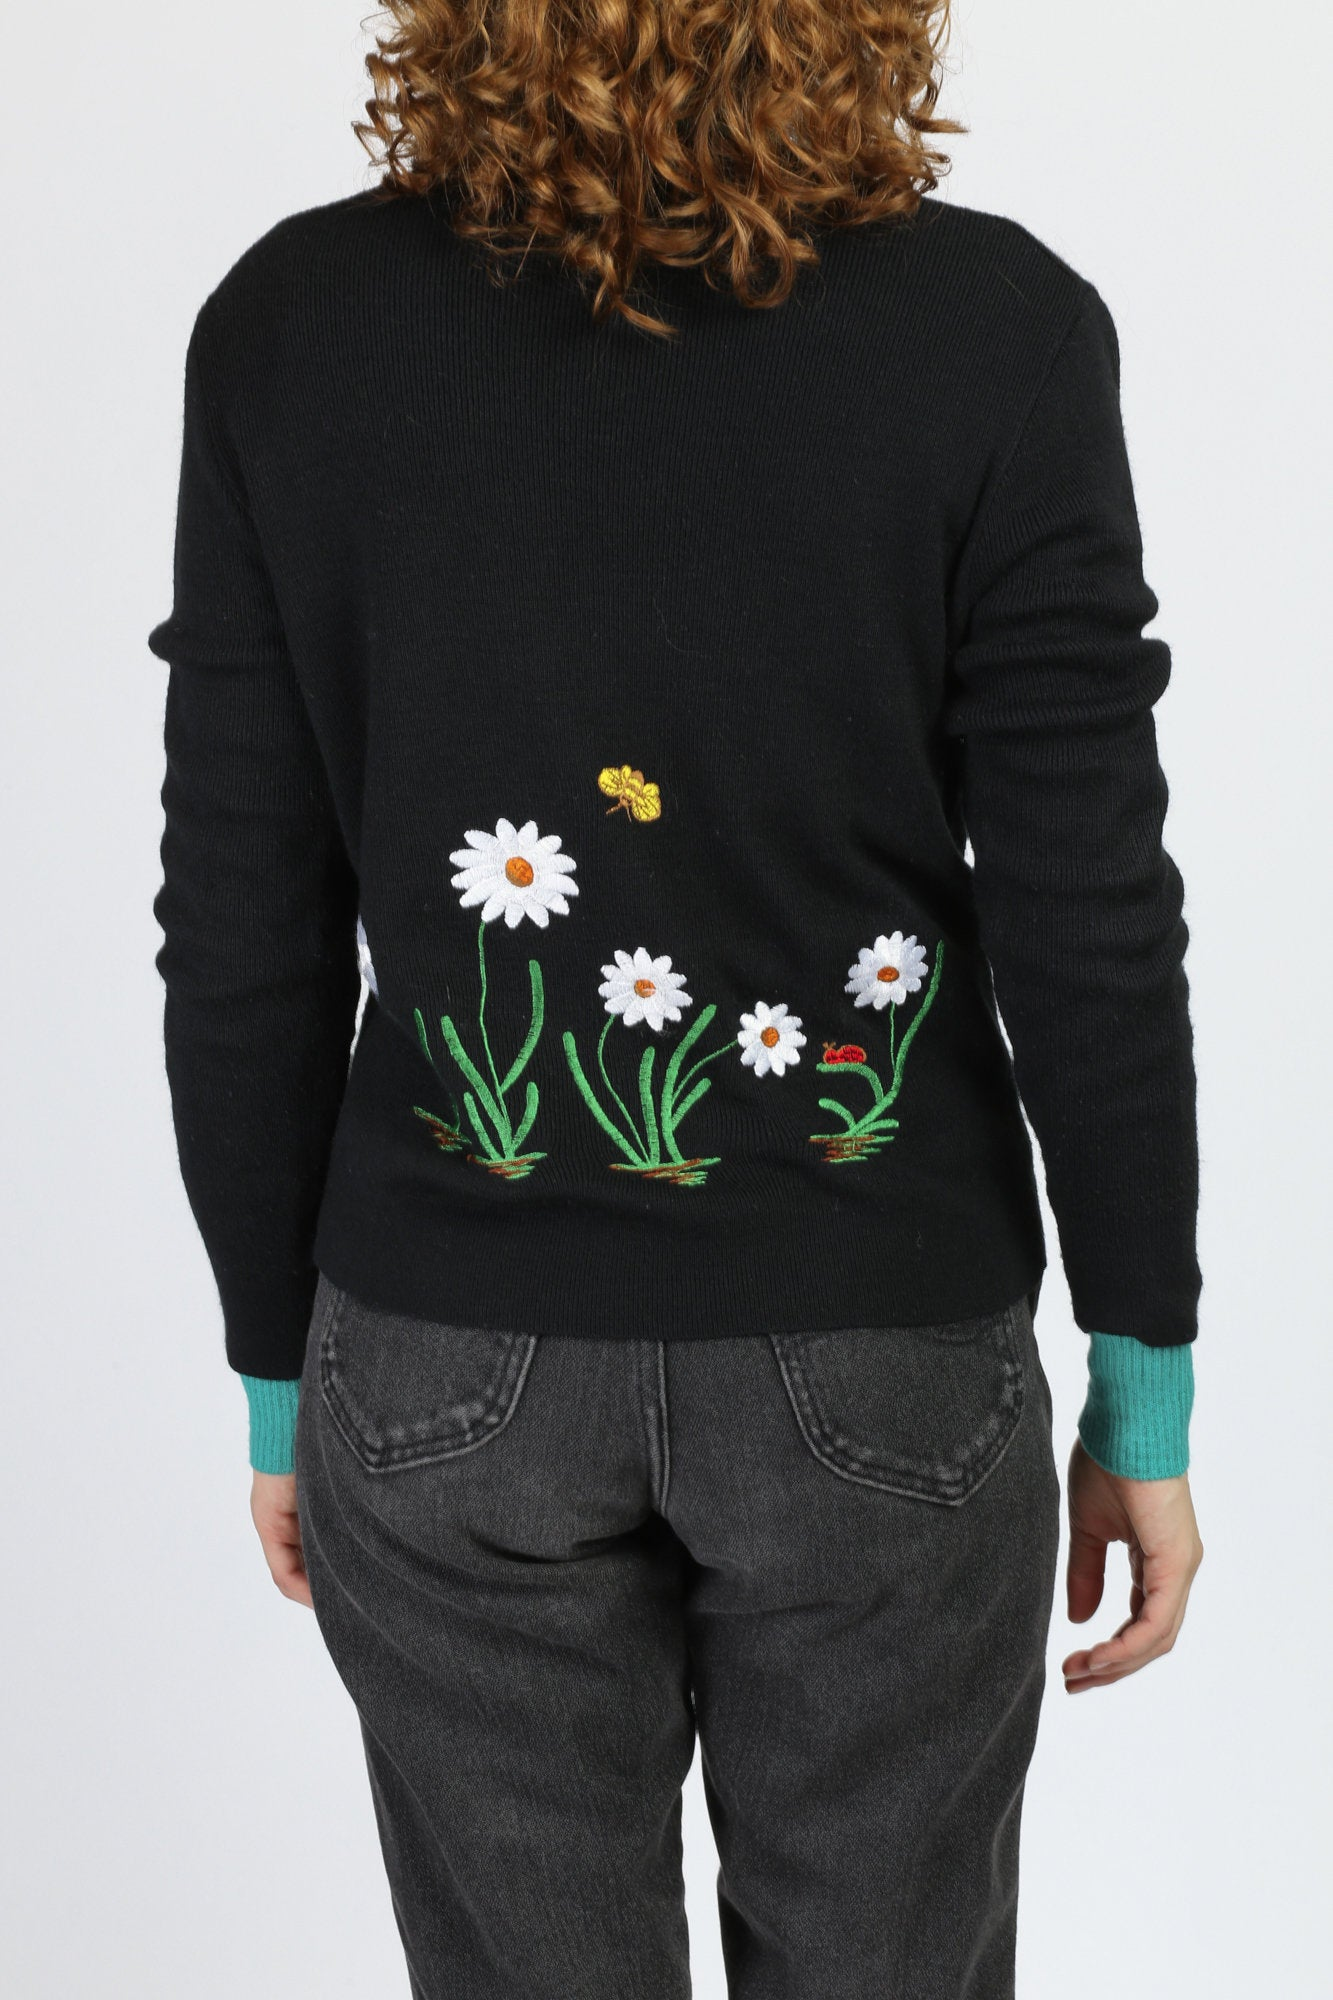 70s Embroidered Flower & Butterfly Sweater - Large